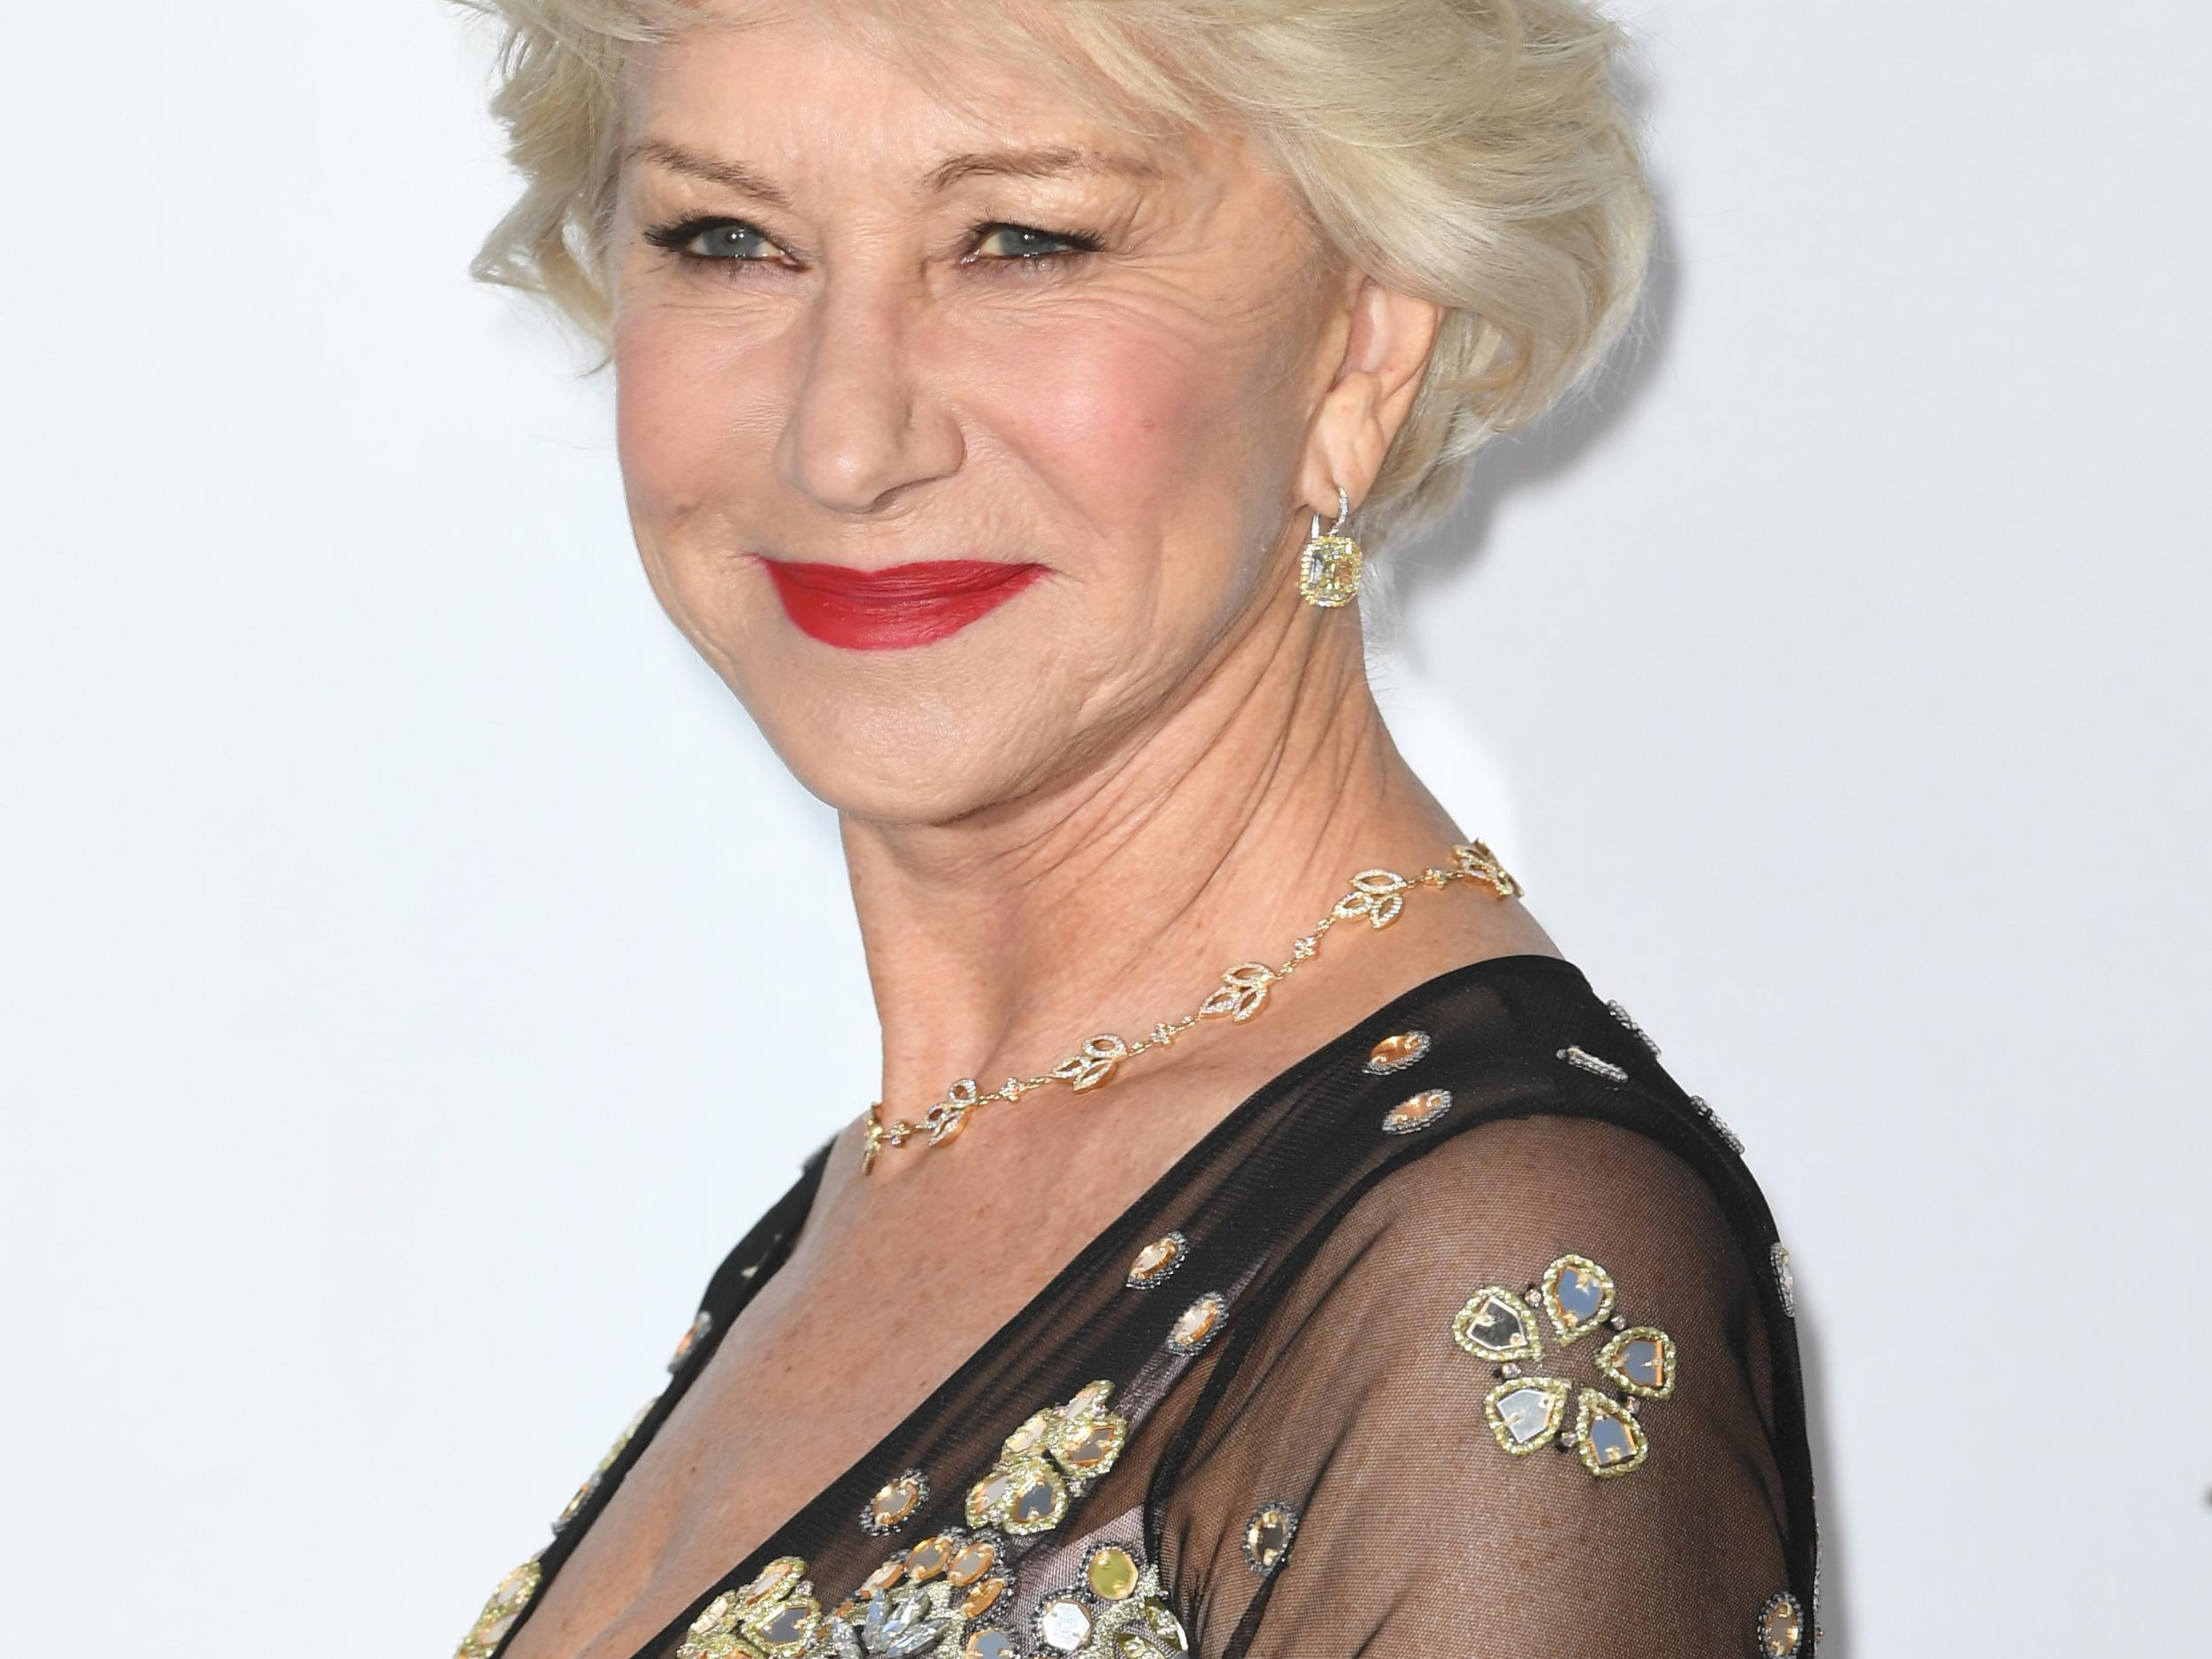 Photos Helen Mirren nudes (57 foto and video), Sexy, Bikini, Twitter, lingerie 2019